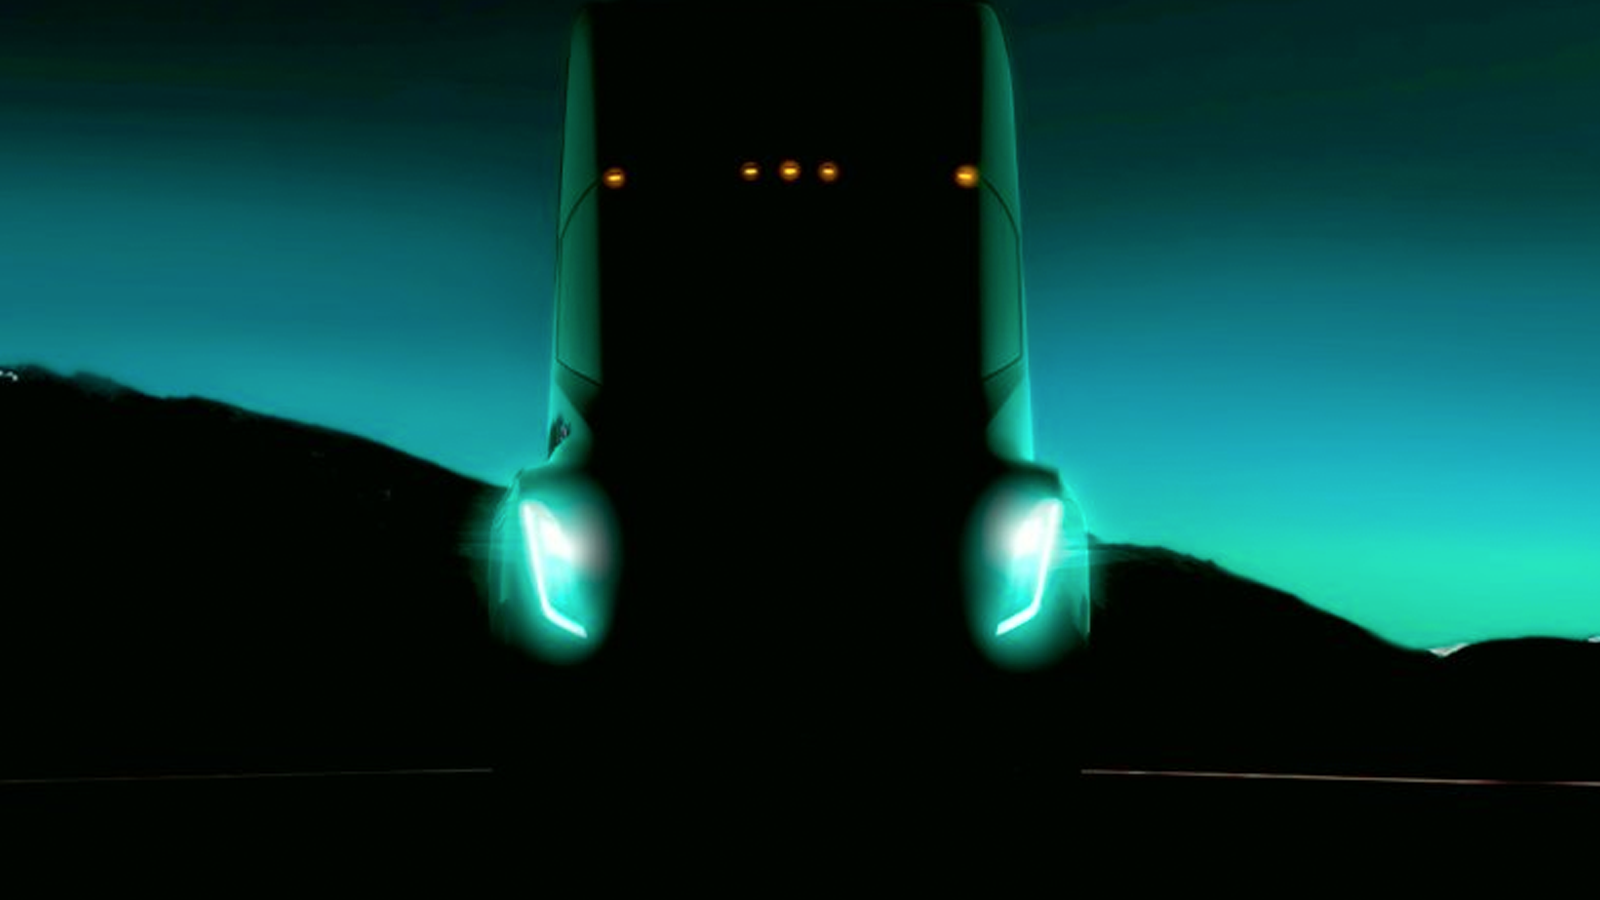 Tesla To Develop Self-Driving Semi-Truck, Will Test In California & Nevada